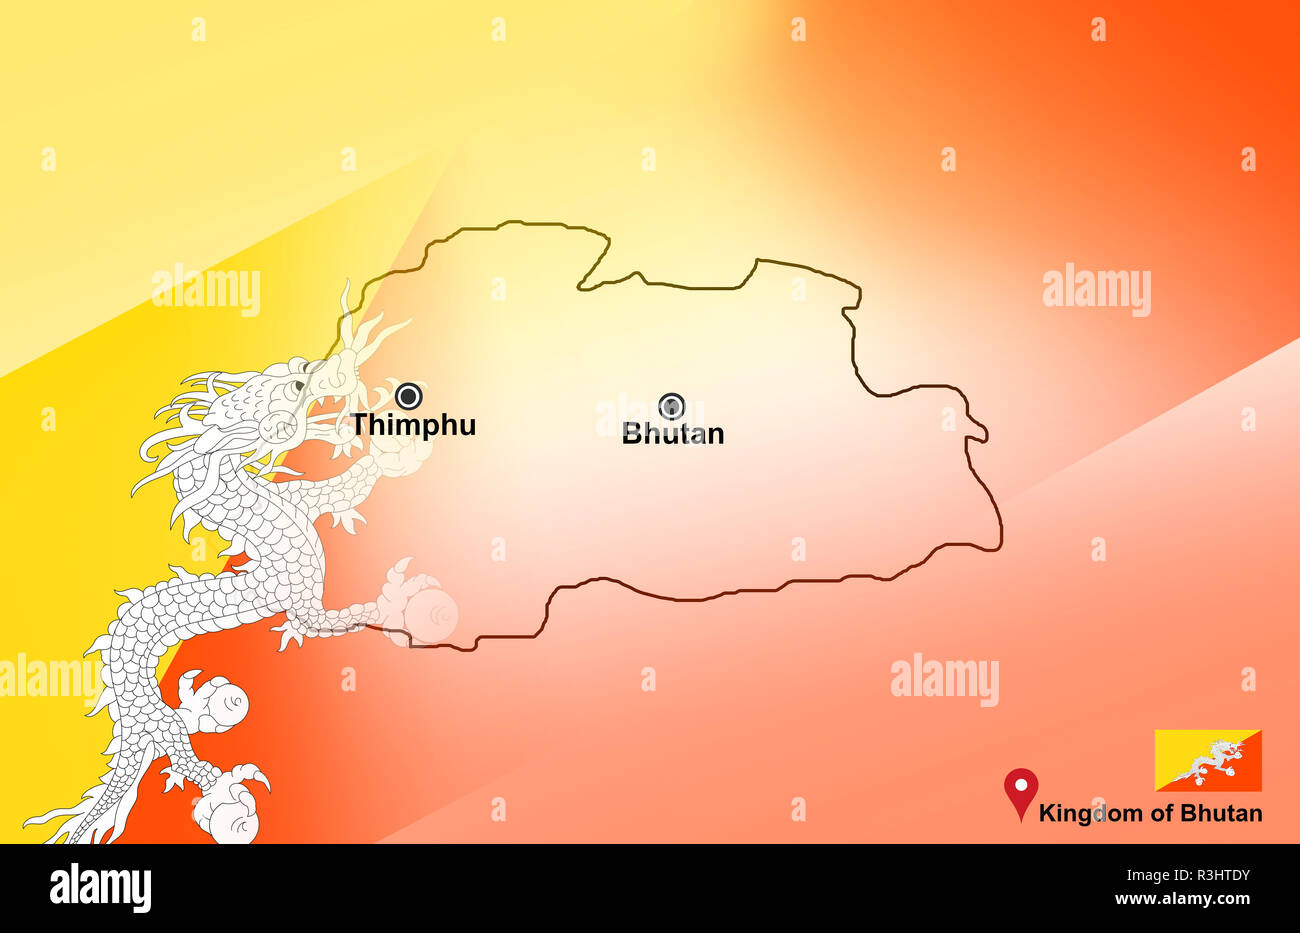 Map Of Asia Bhutan.Bhutan Map And Thimphu With Location Map Pin And Bhutan Flag On